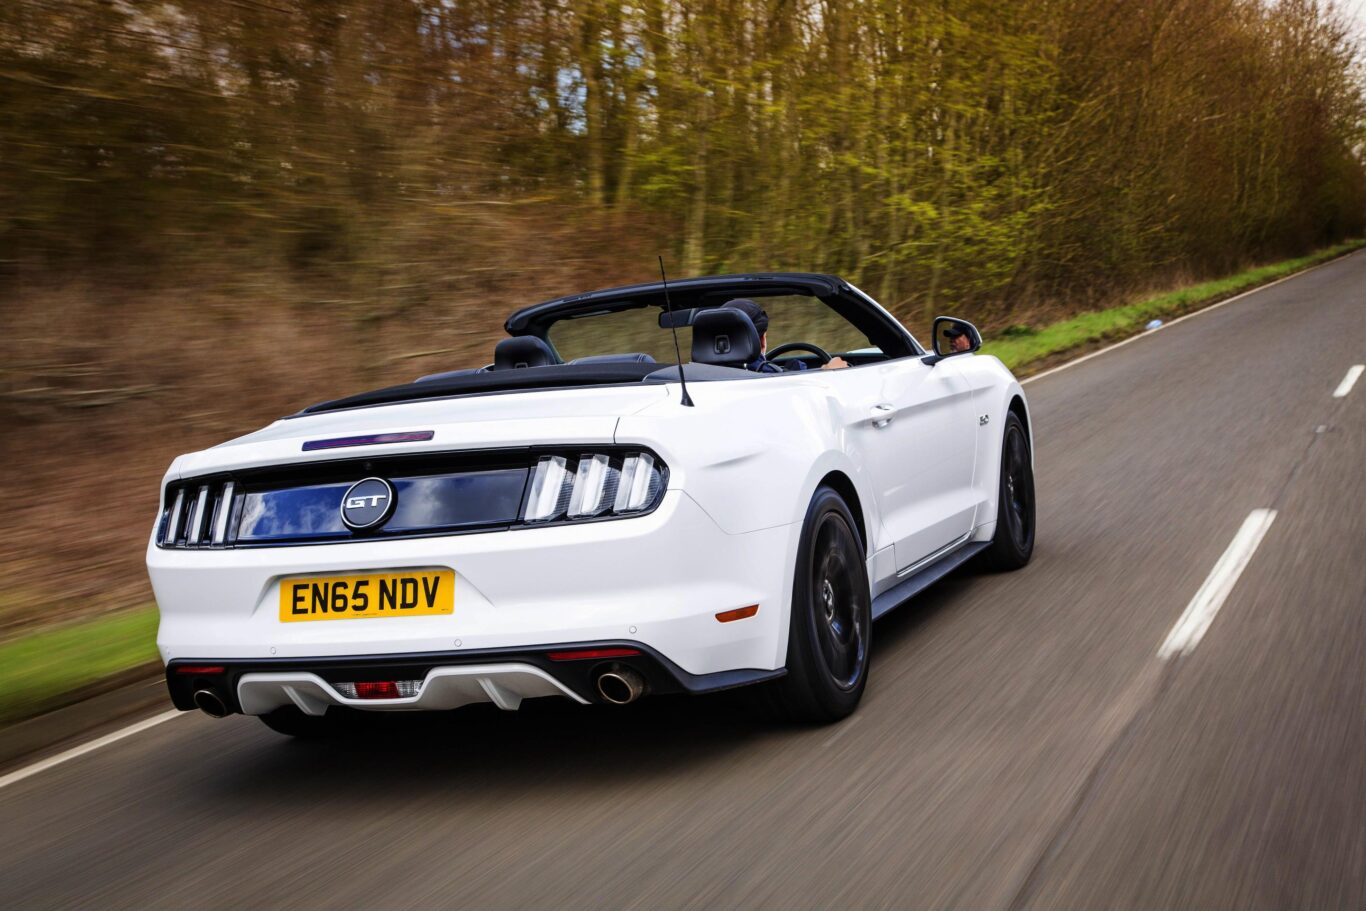 The Mustang brings old-school muscle car charm to the UK